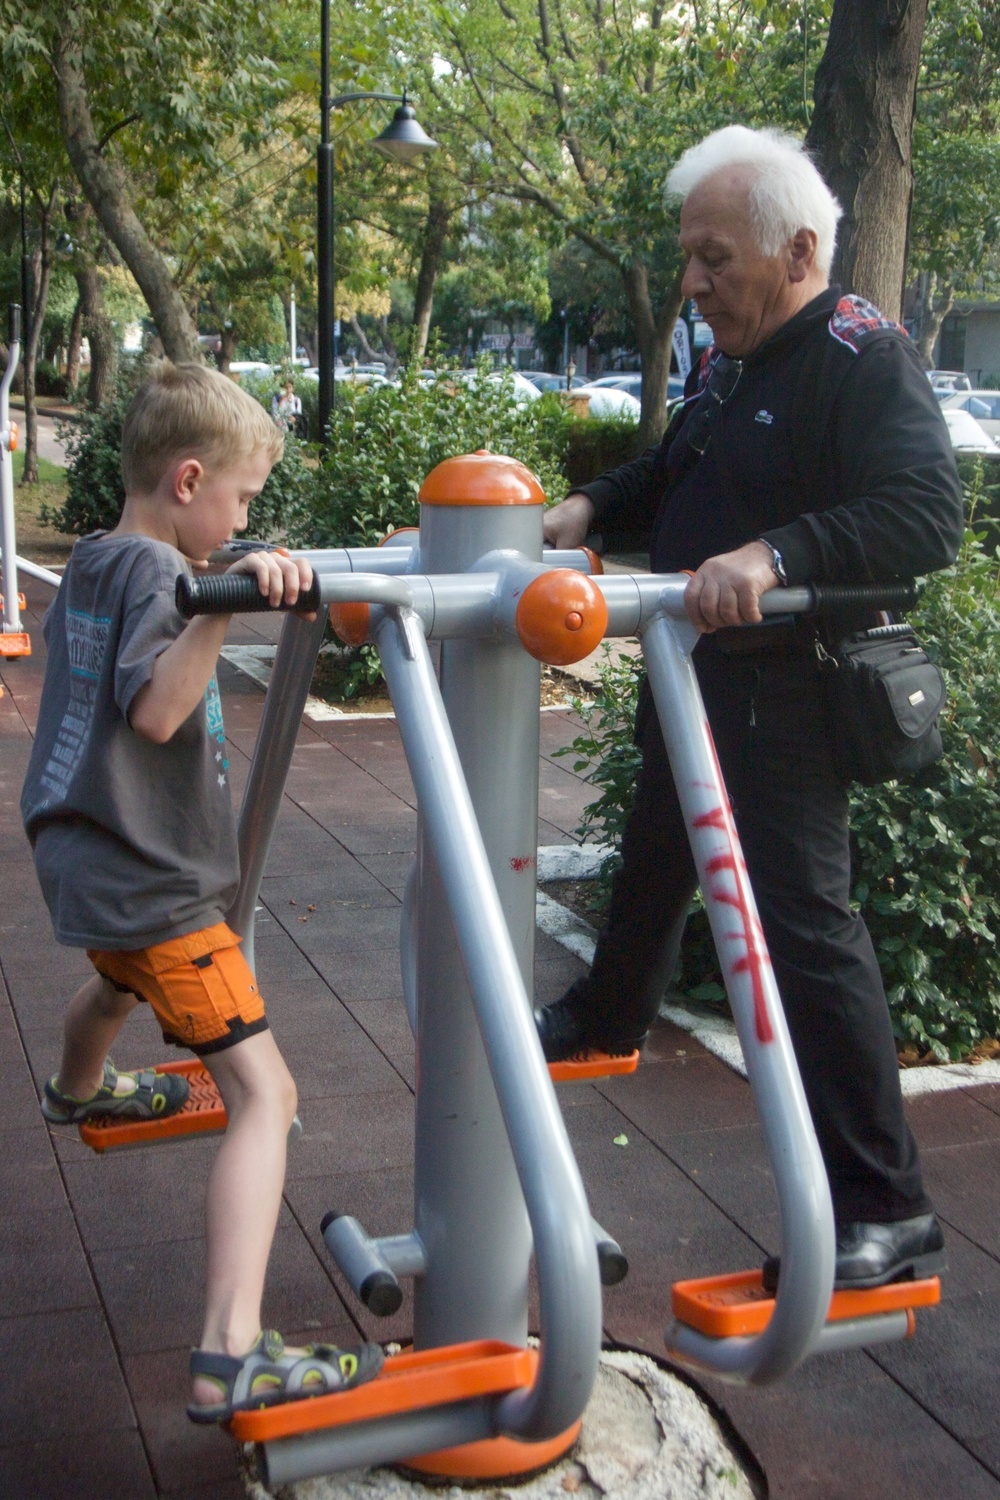 Public exercise machines in parks